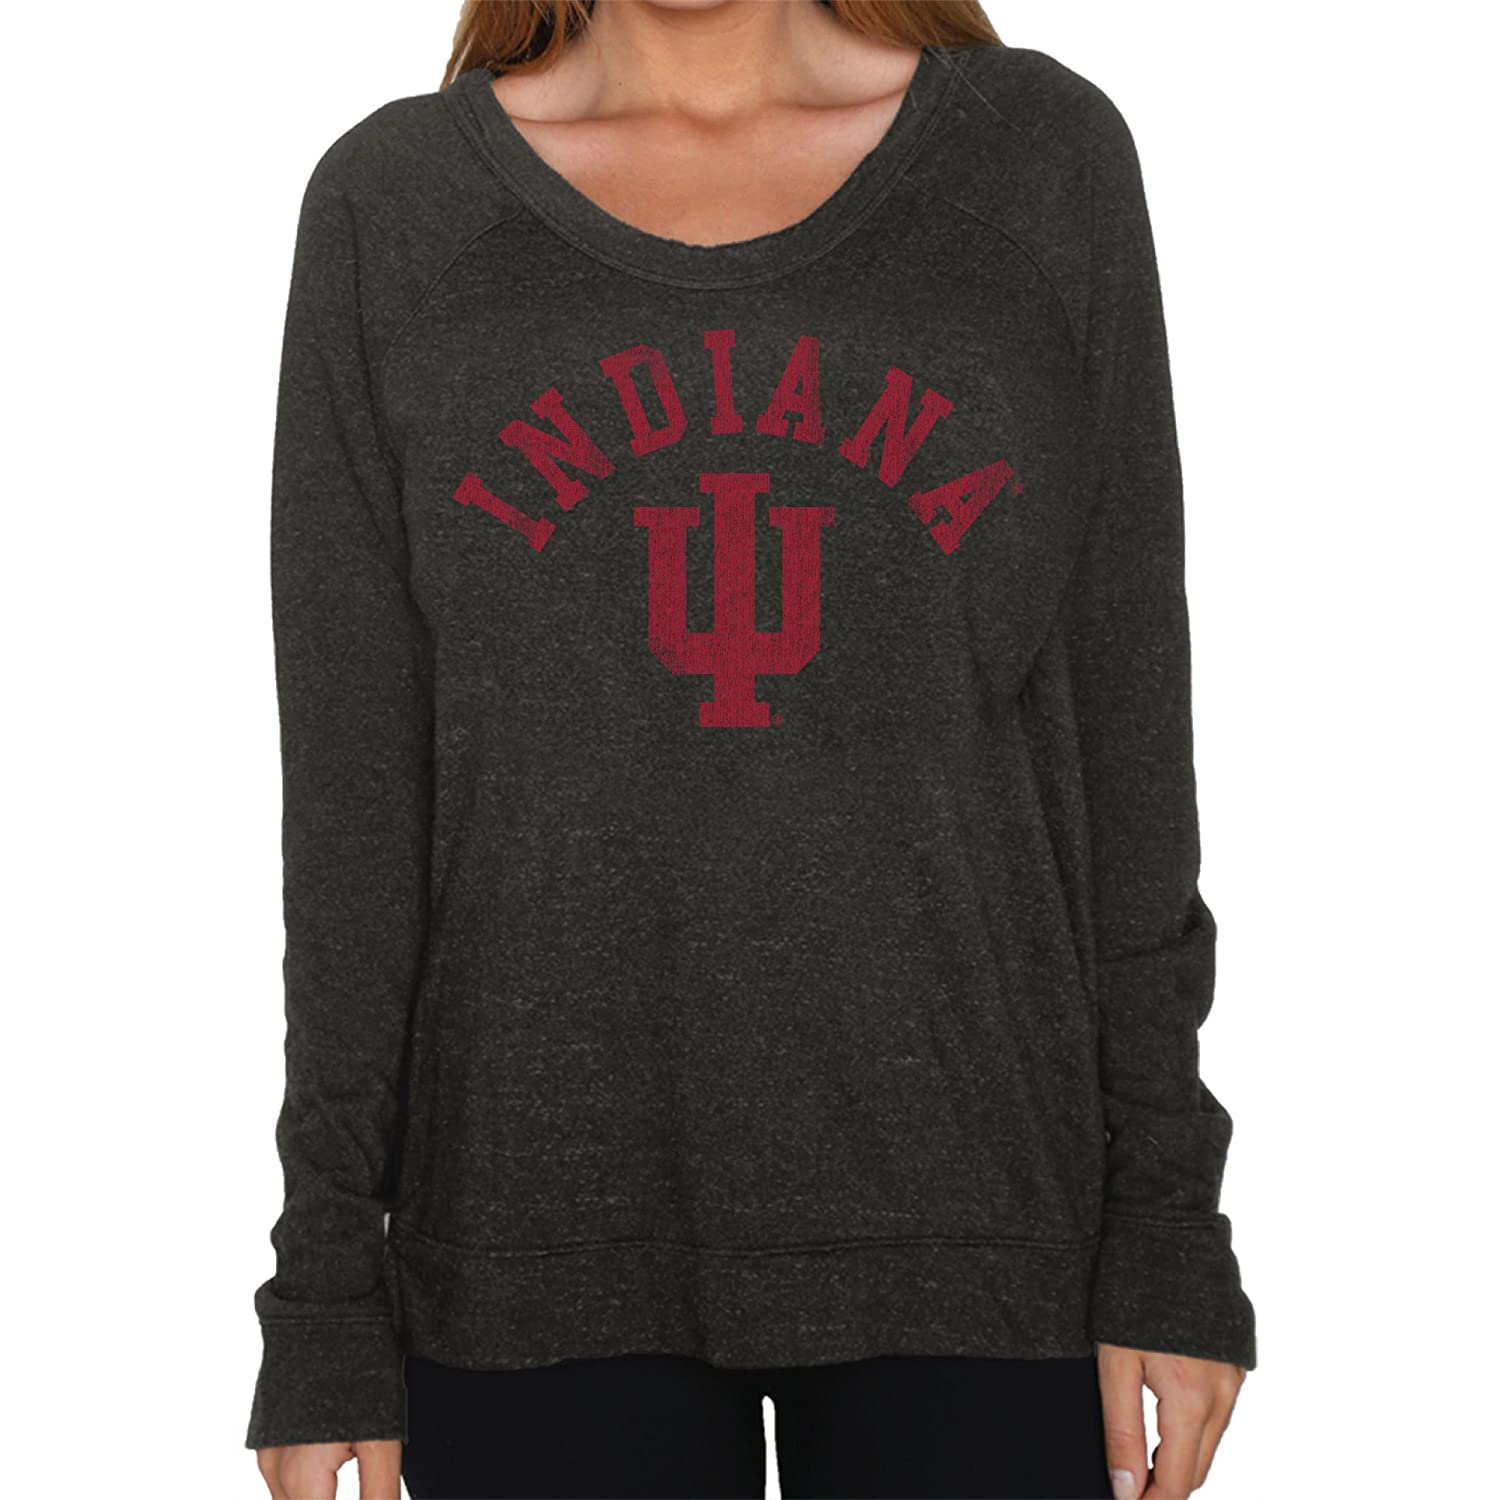 NCAA Womens Long Sleeve Quad Fleece Shirt